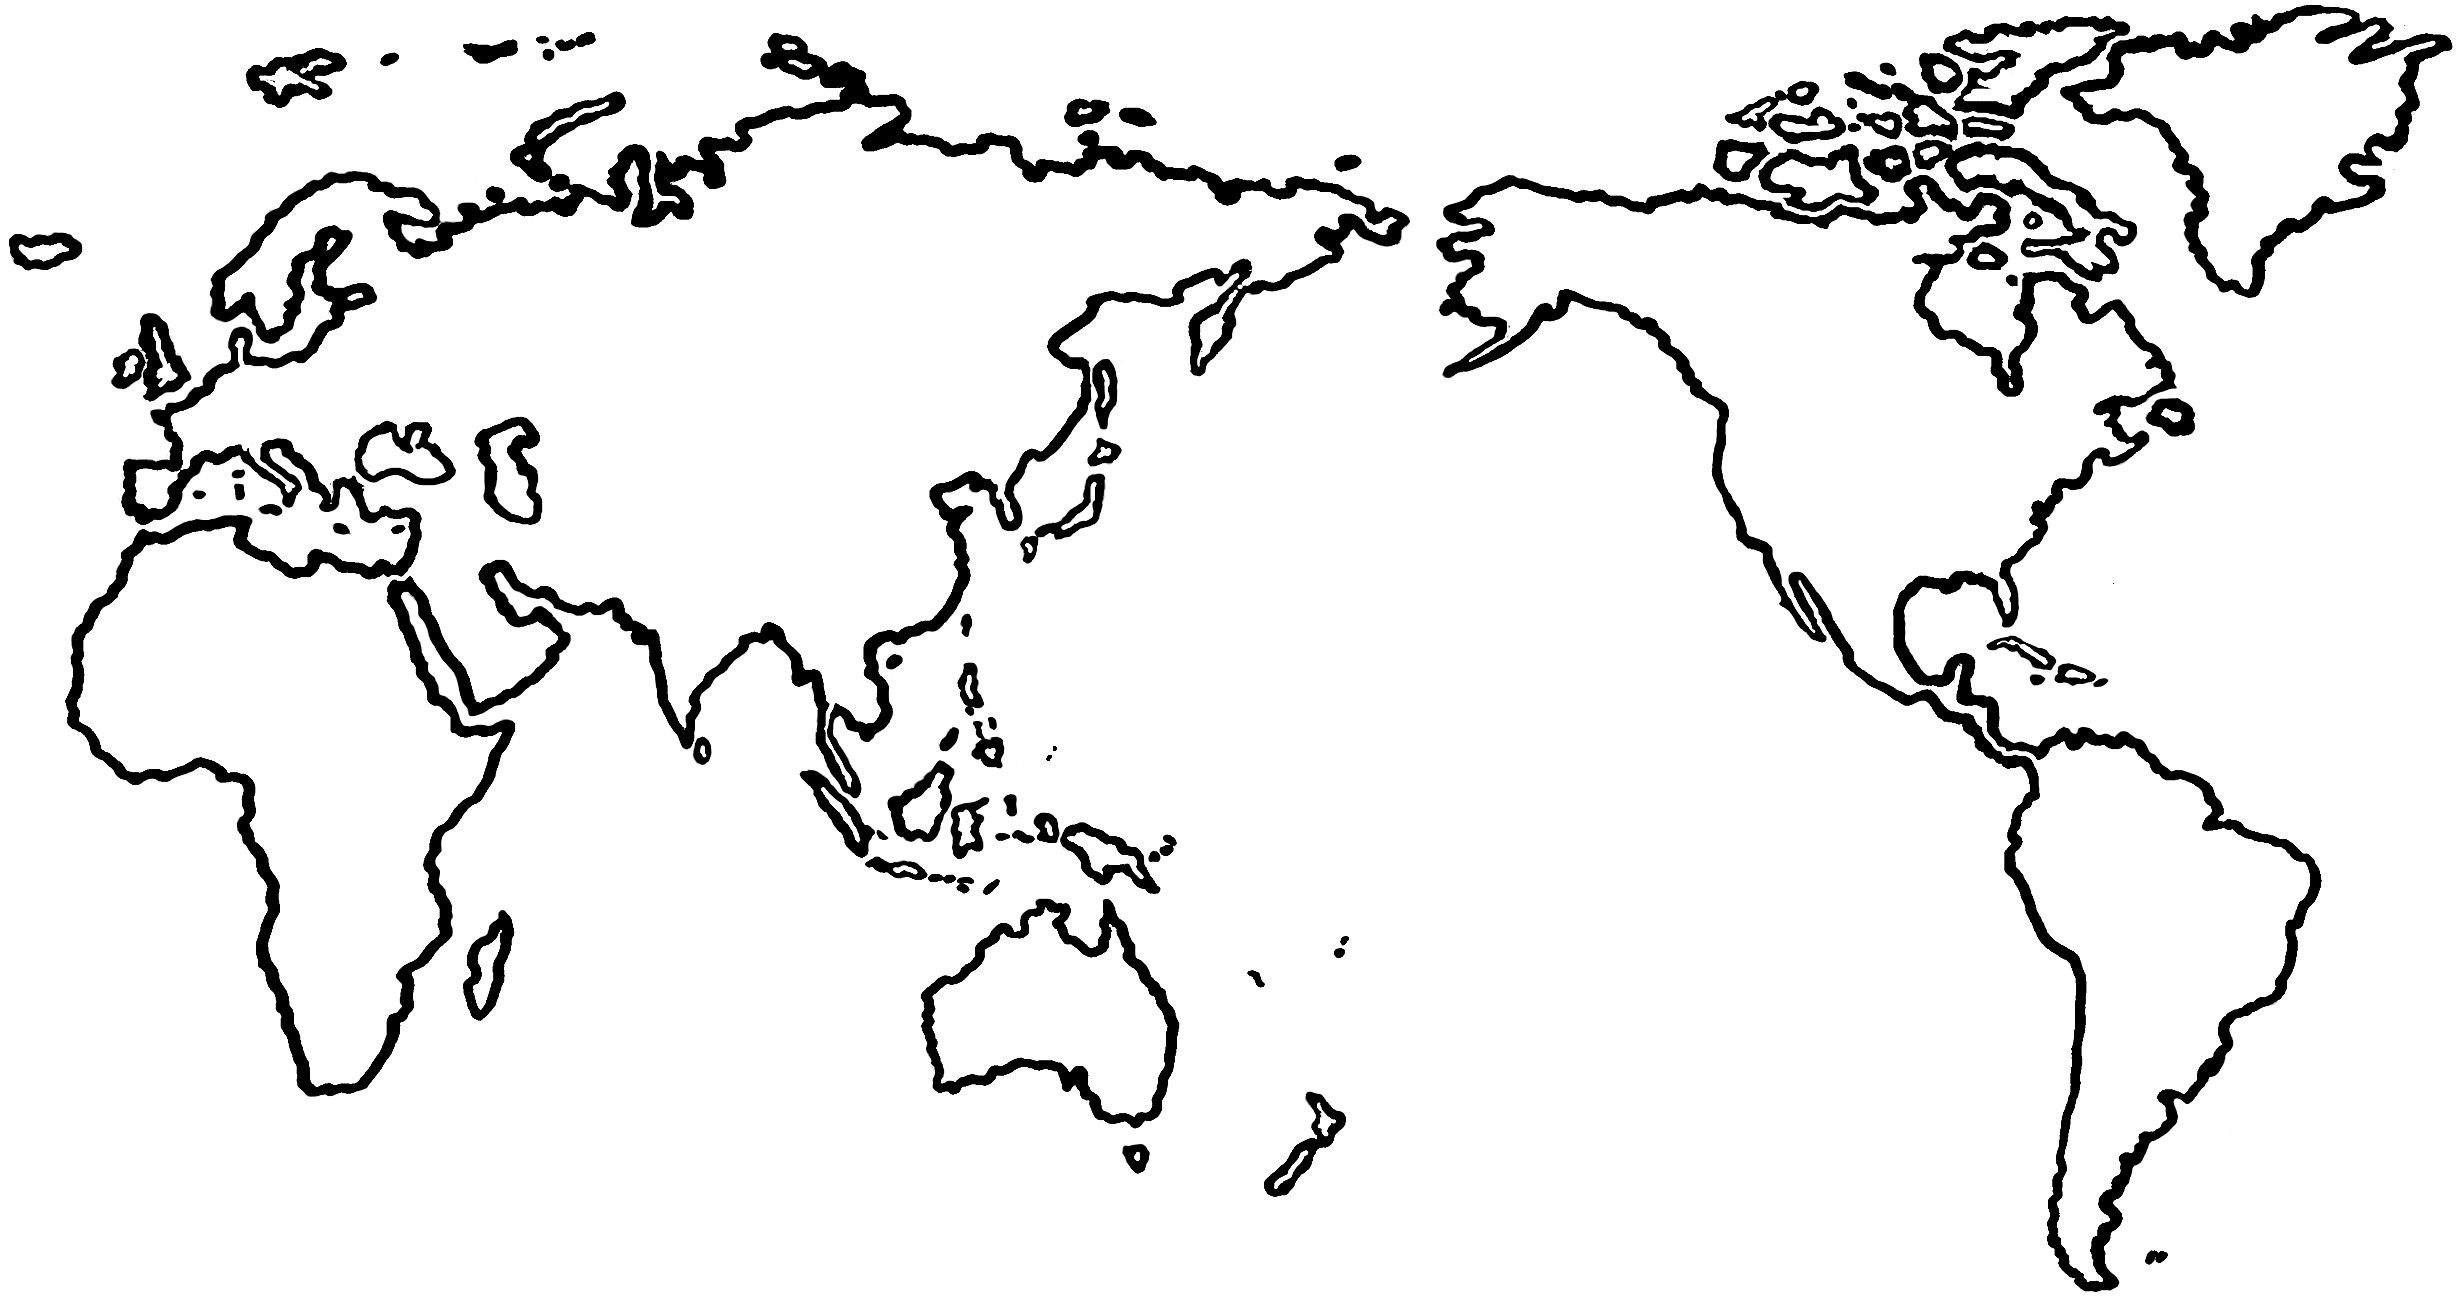 The best free World map vector images. Download from 50 free vectors ...